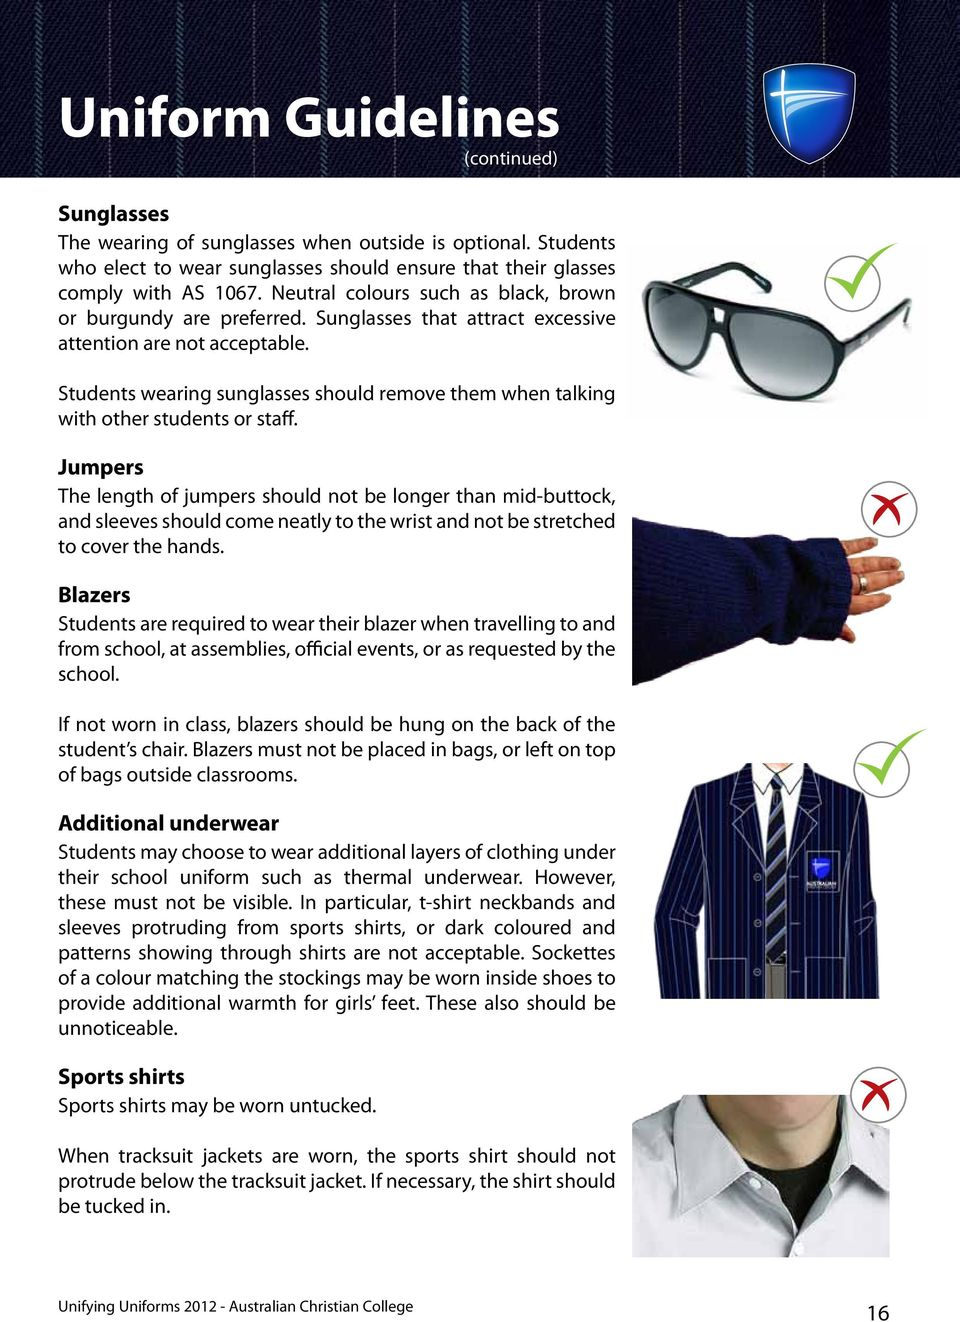 Students wearing sunglasses should remove them when talking with other students or staff.